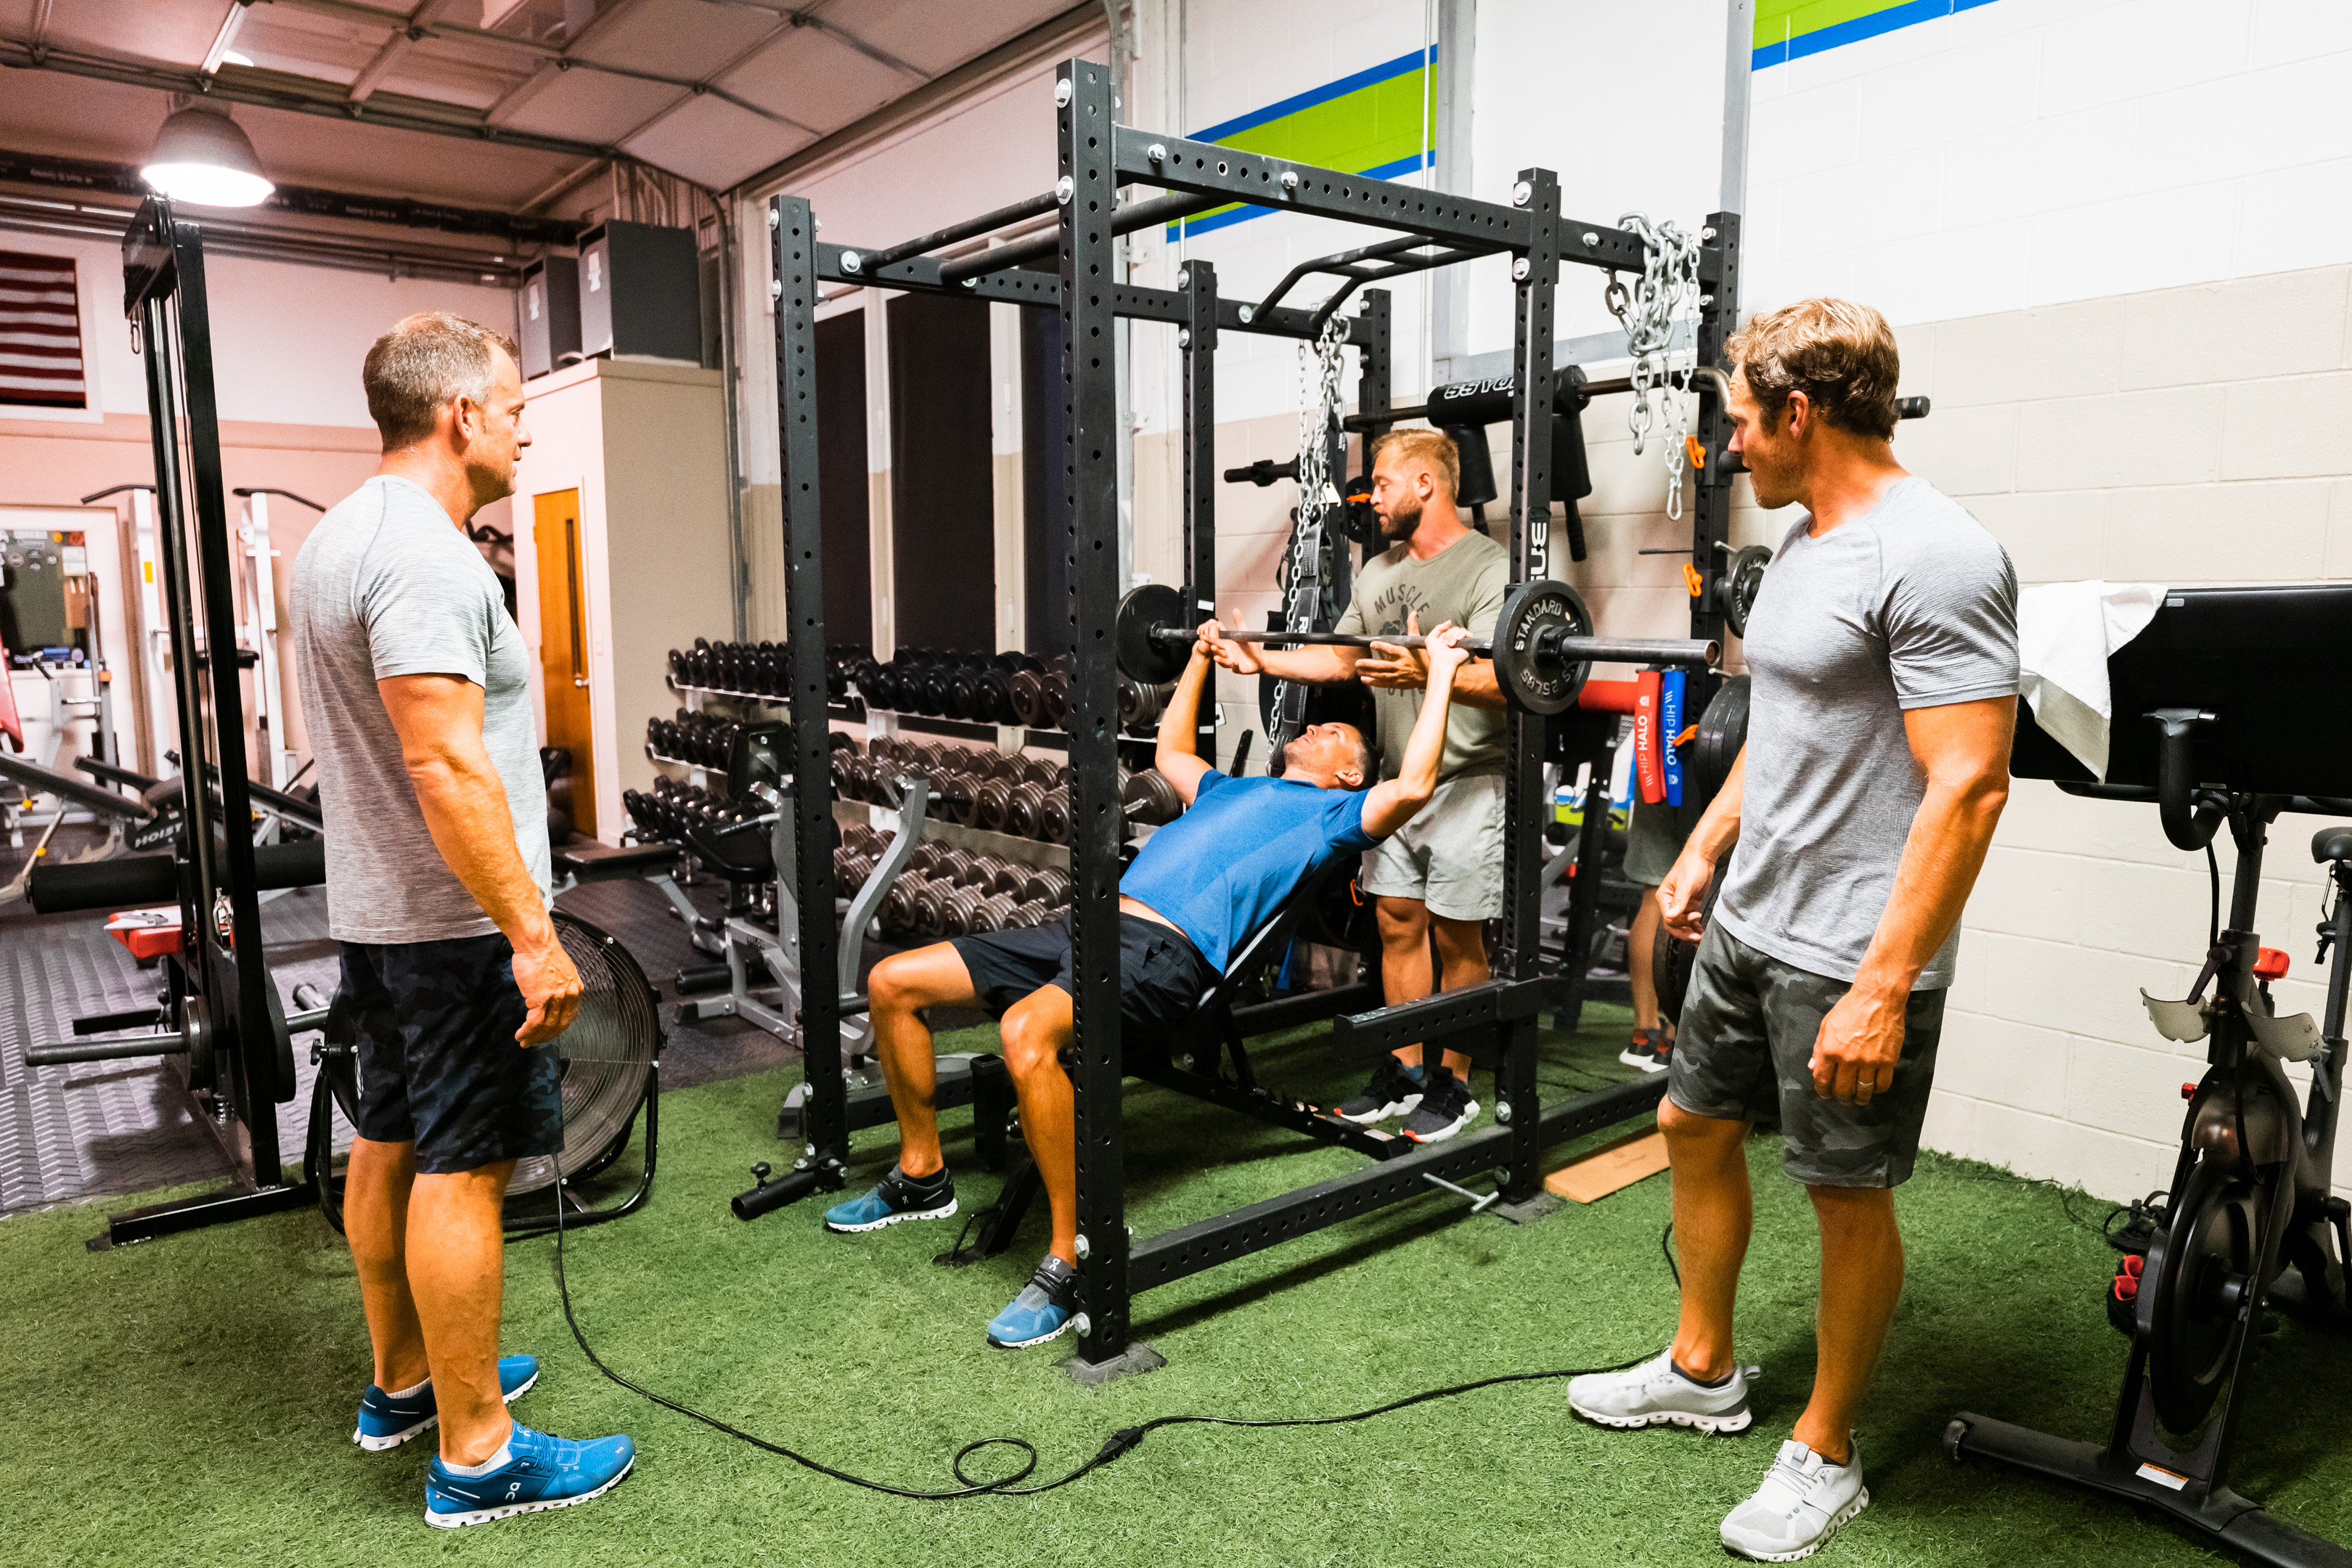 Semi-Private training at Prevail Grand Rapids personal training and gym located in Ada, Michigan.